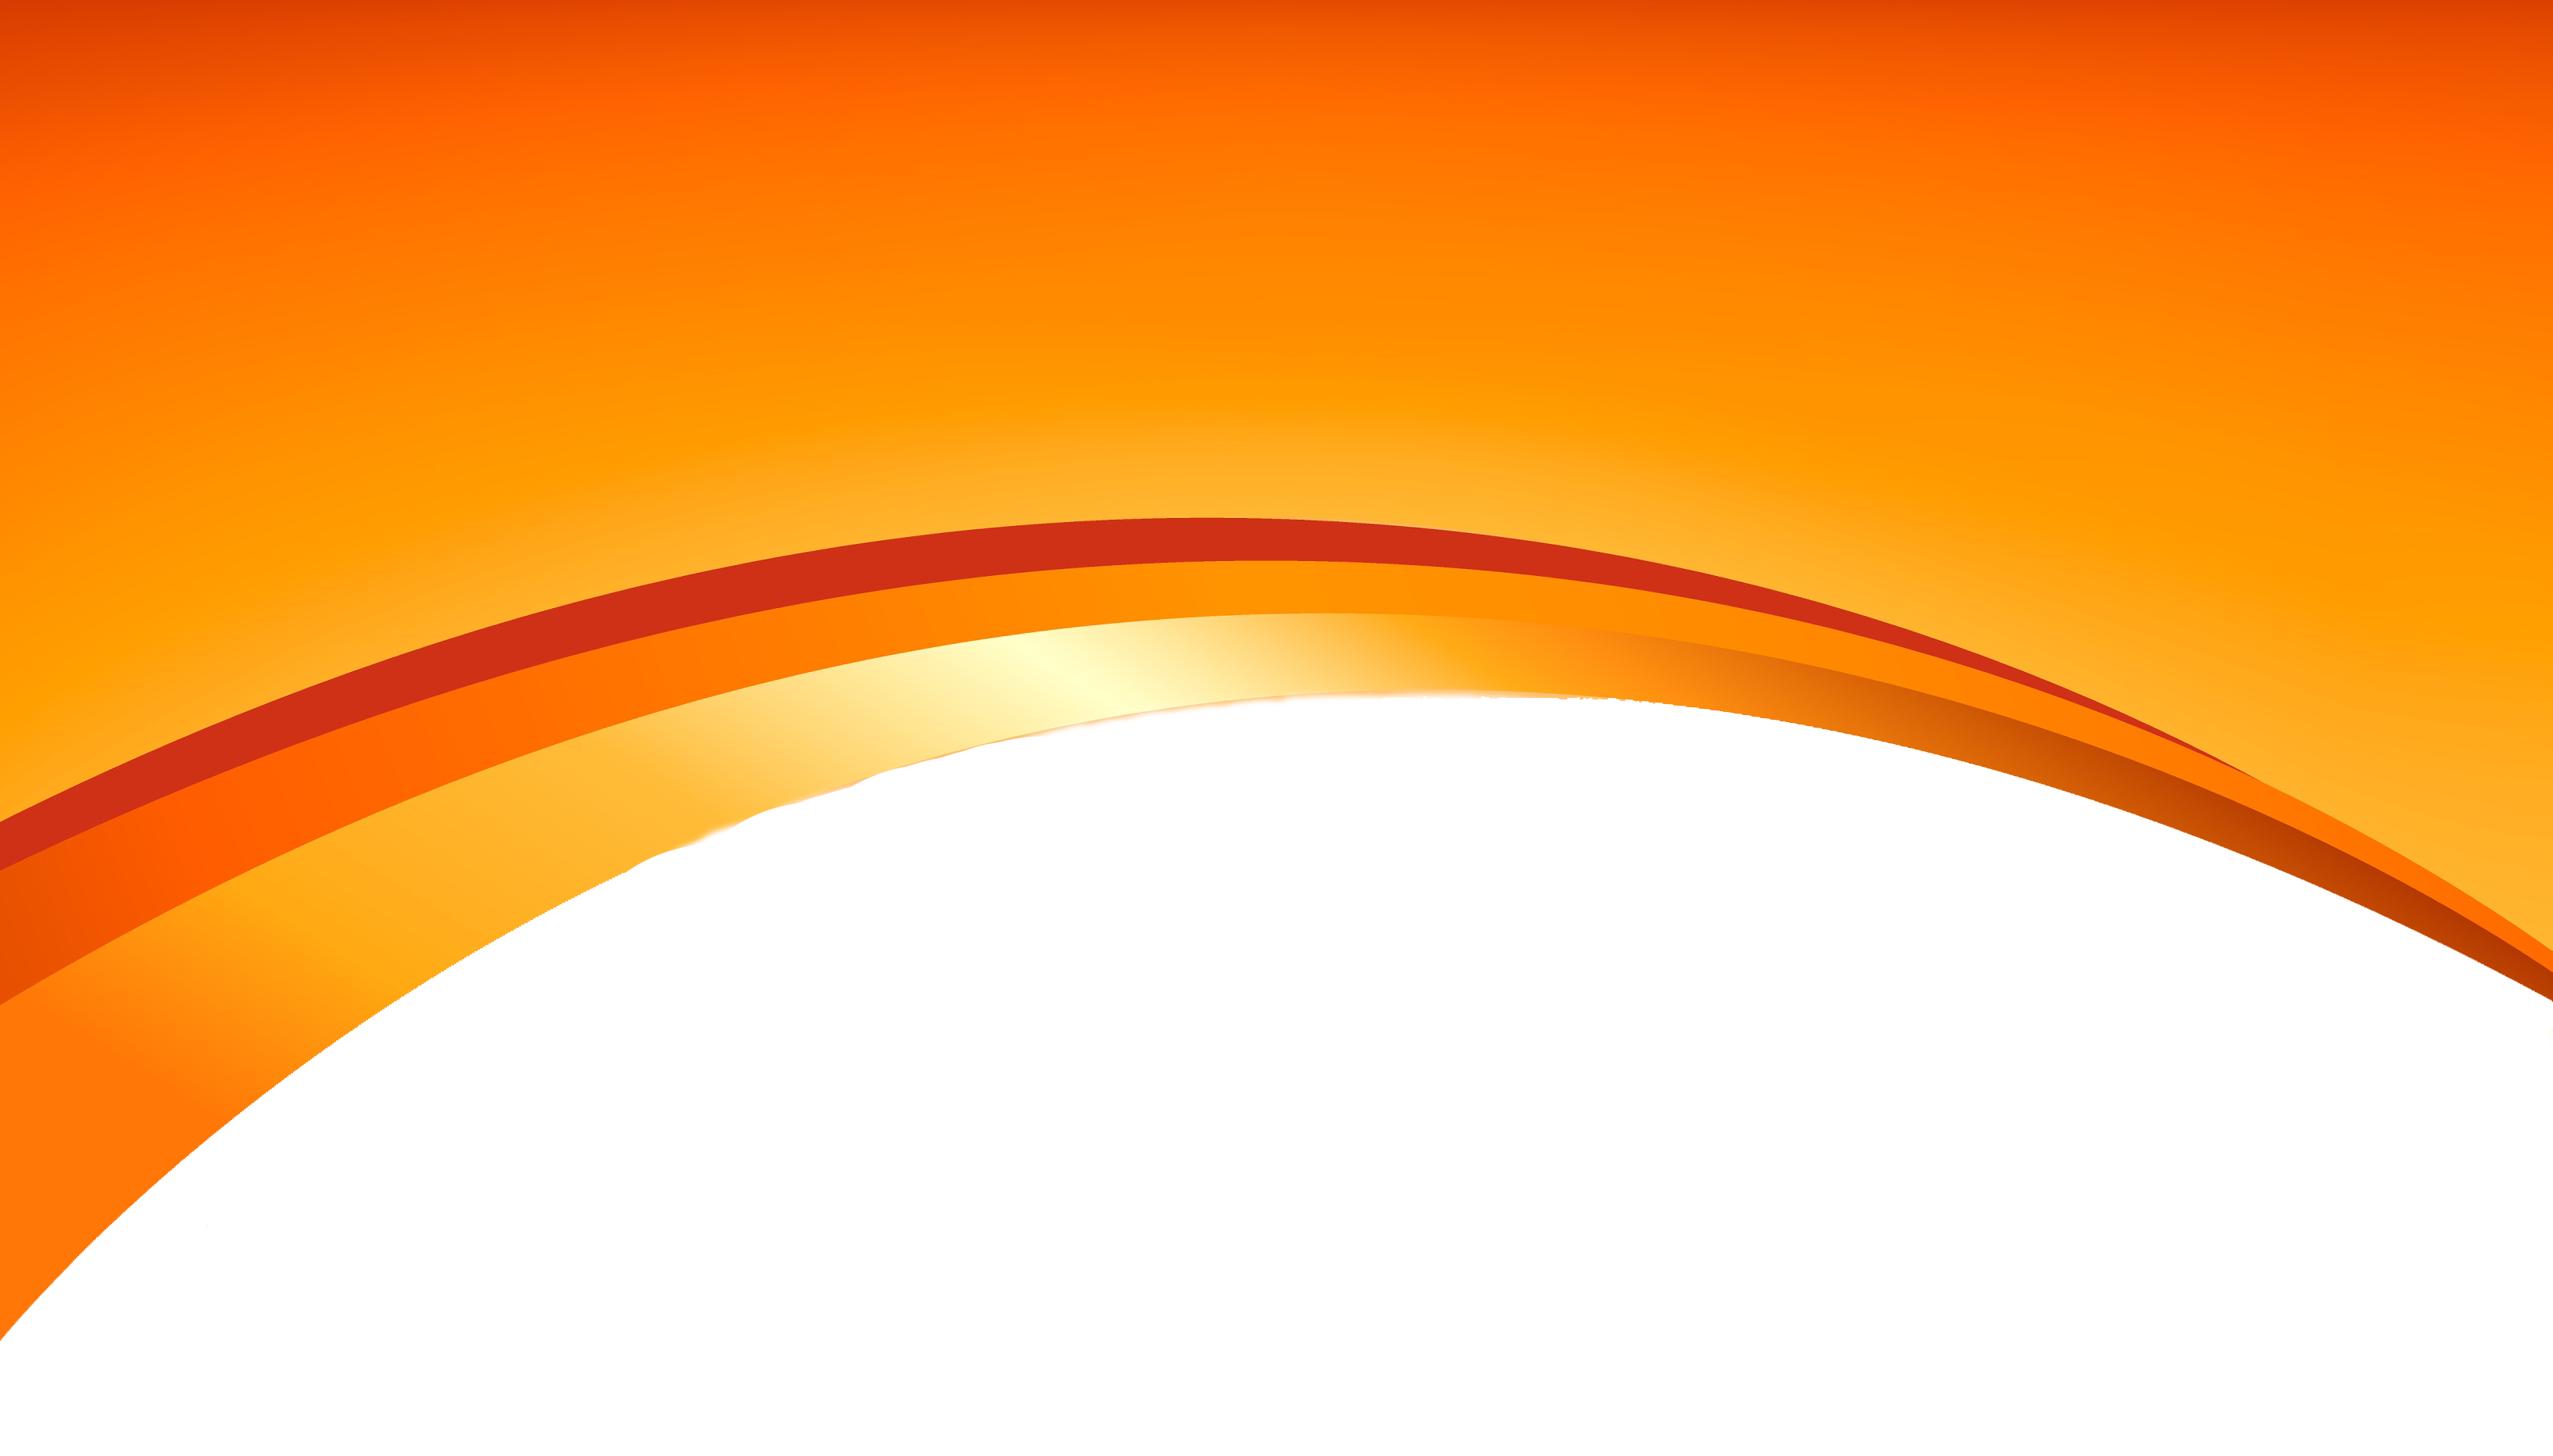 Orange Background Picture 2014 HD Backgrounds Wallpaper